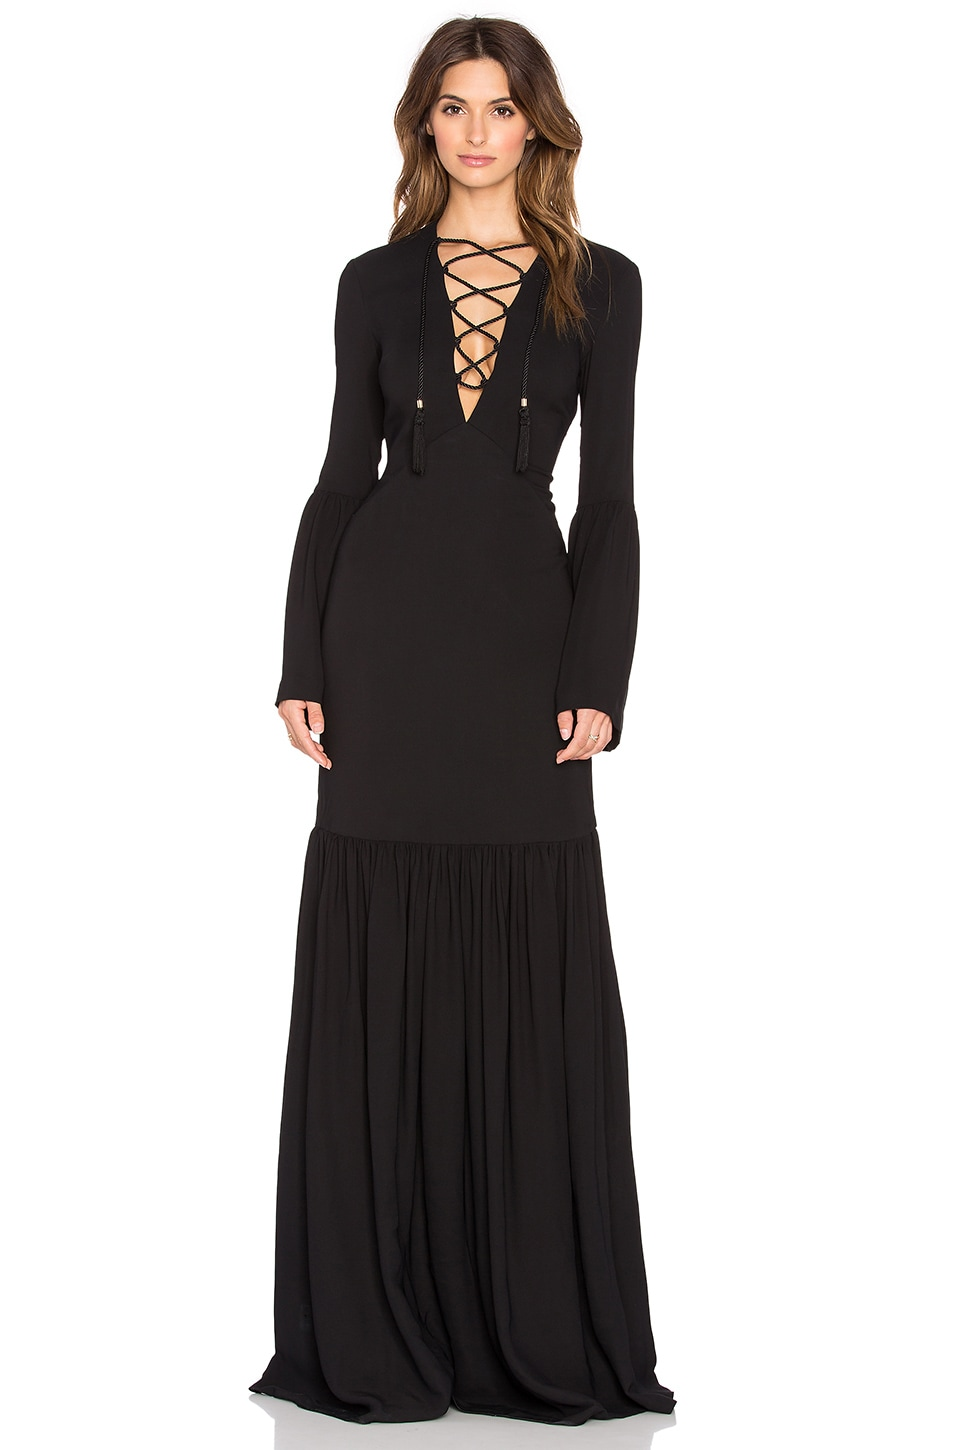 RACHEL ZOE Pax Lace Up Gown in Black